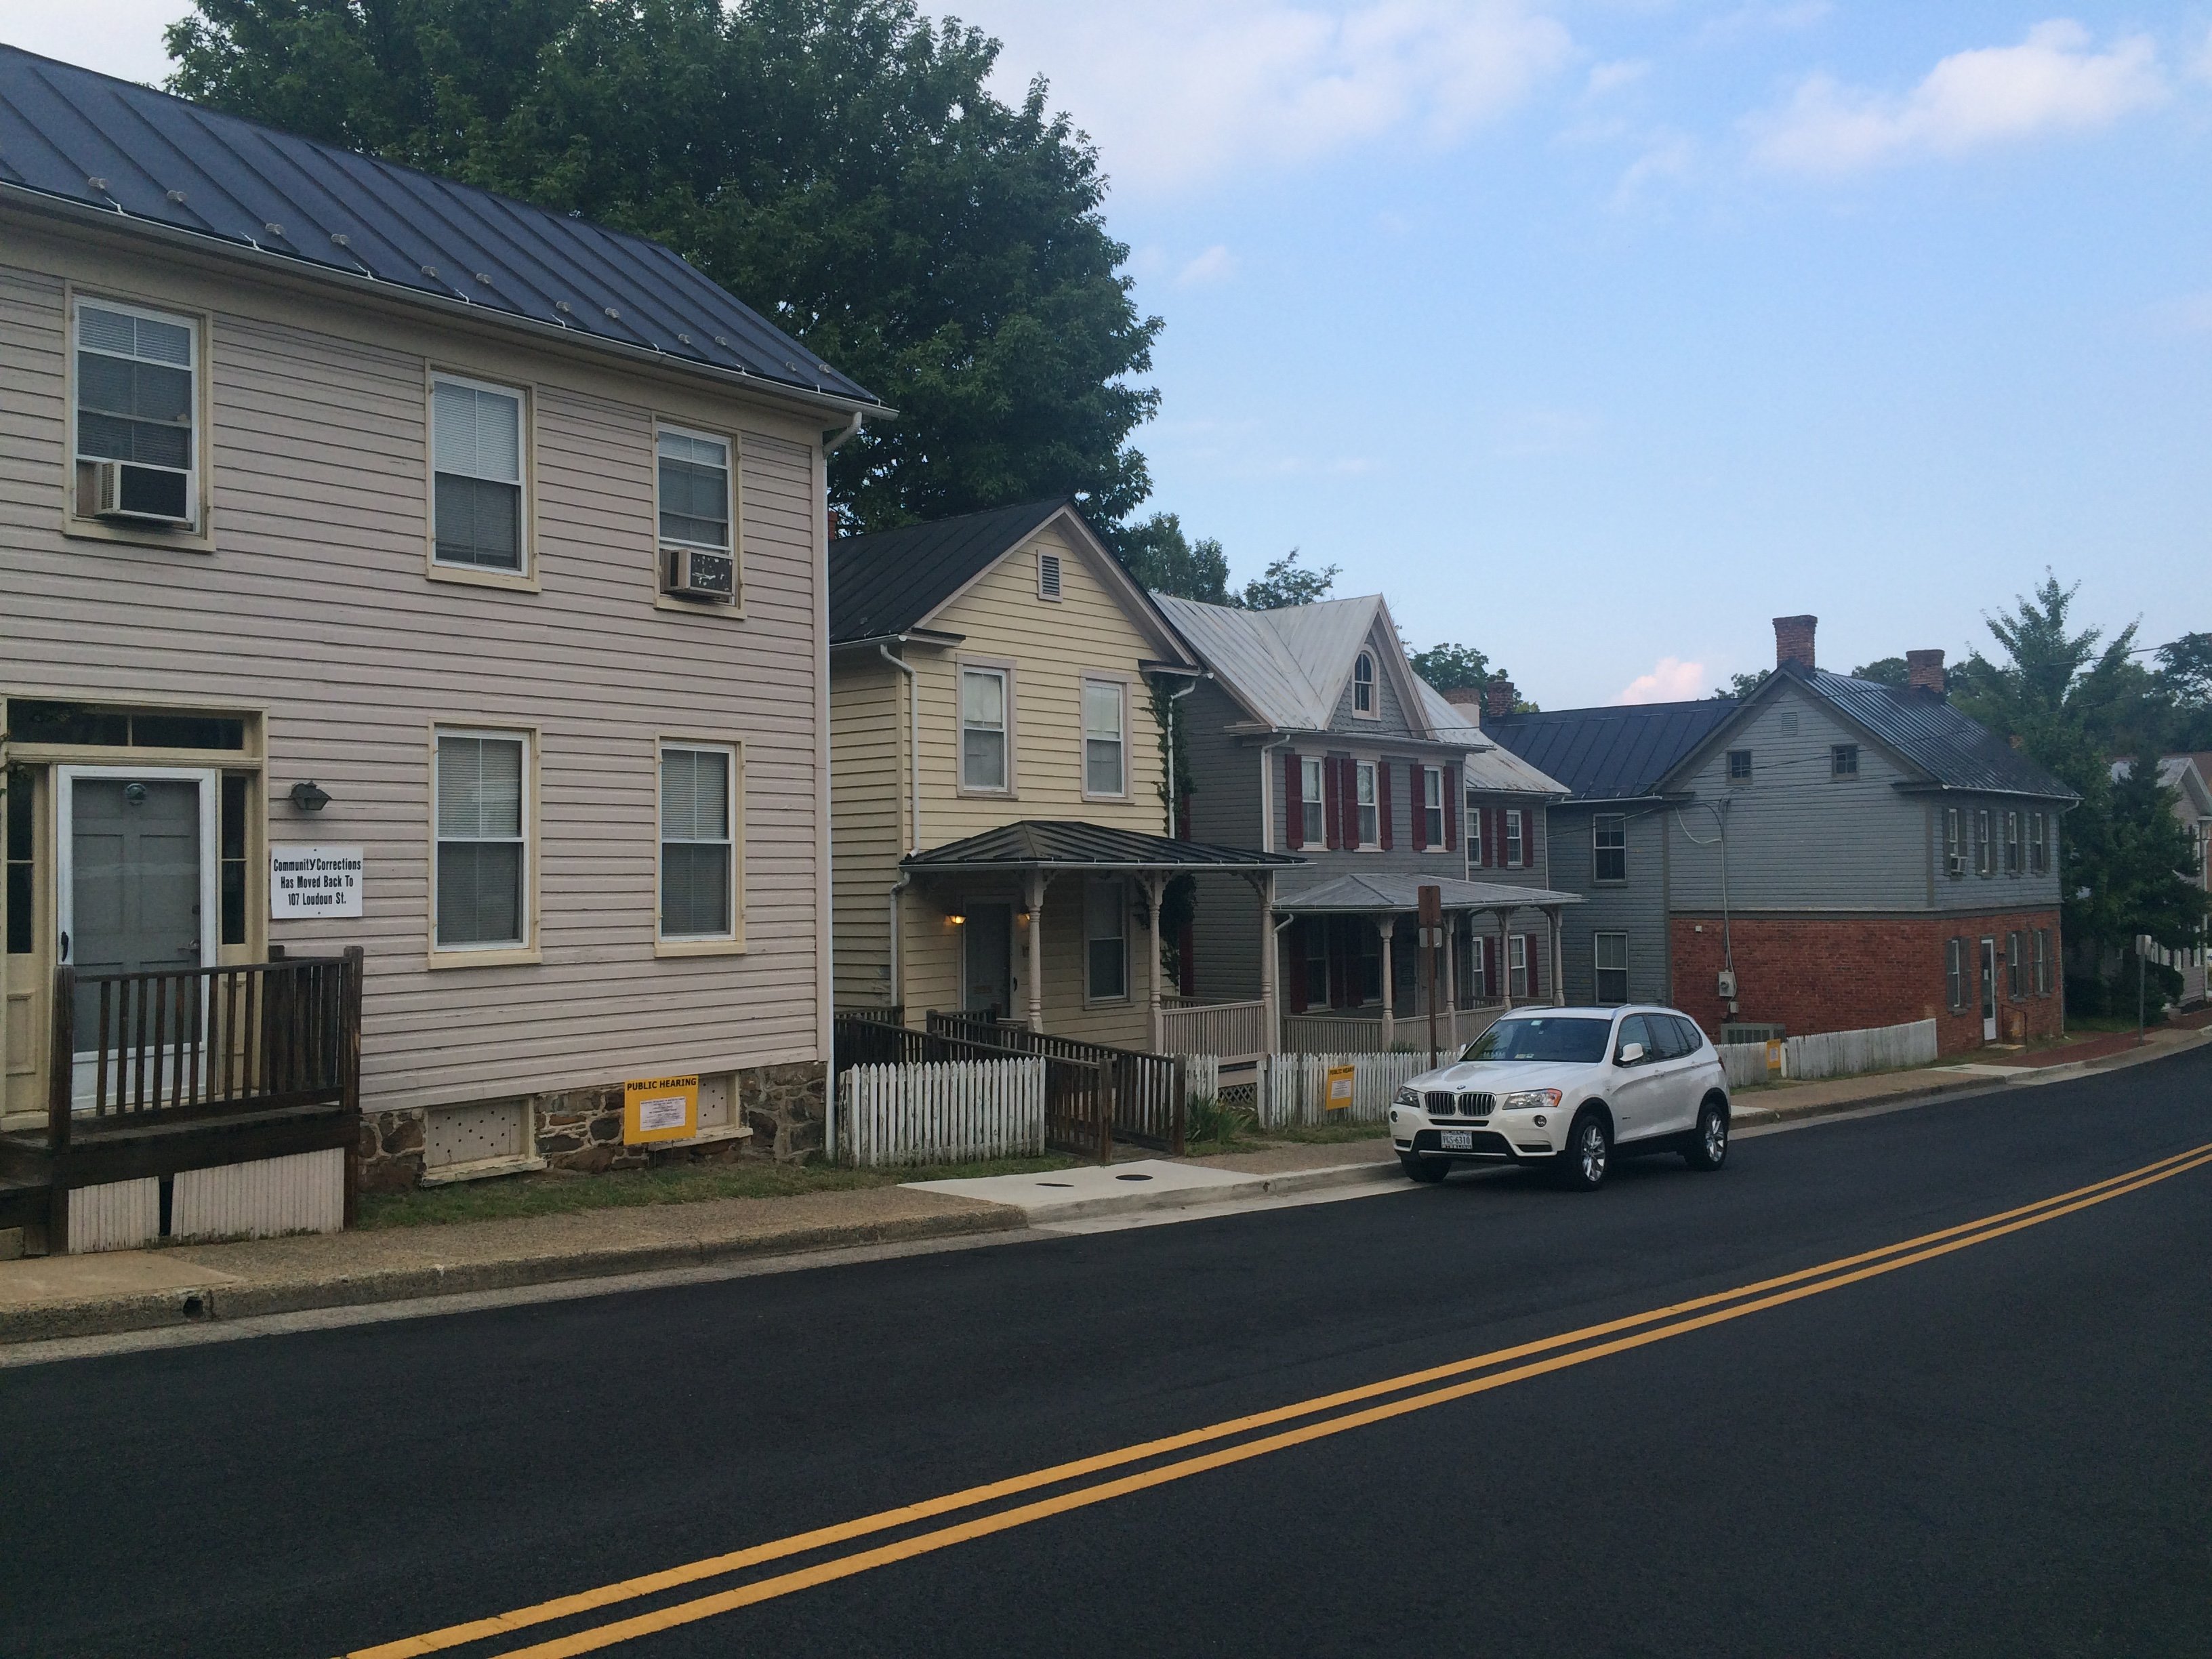 Leesburg to weigh saving jobs against preserving history